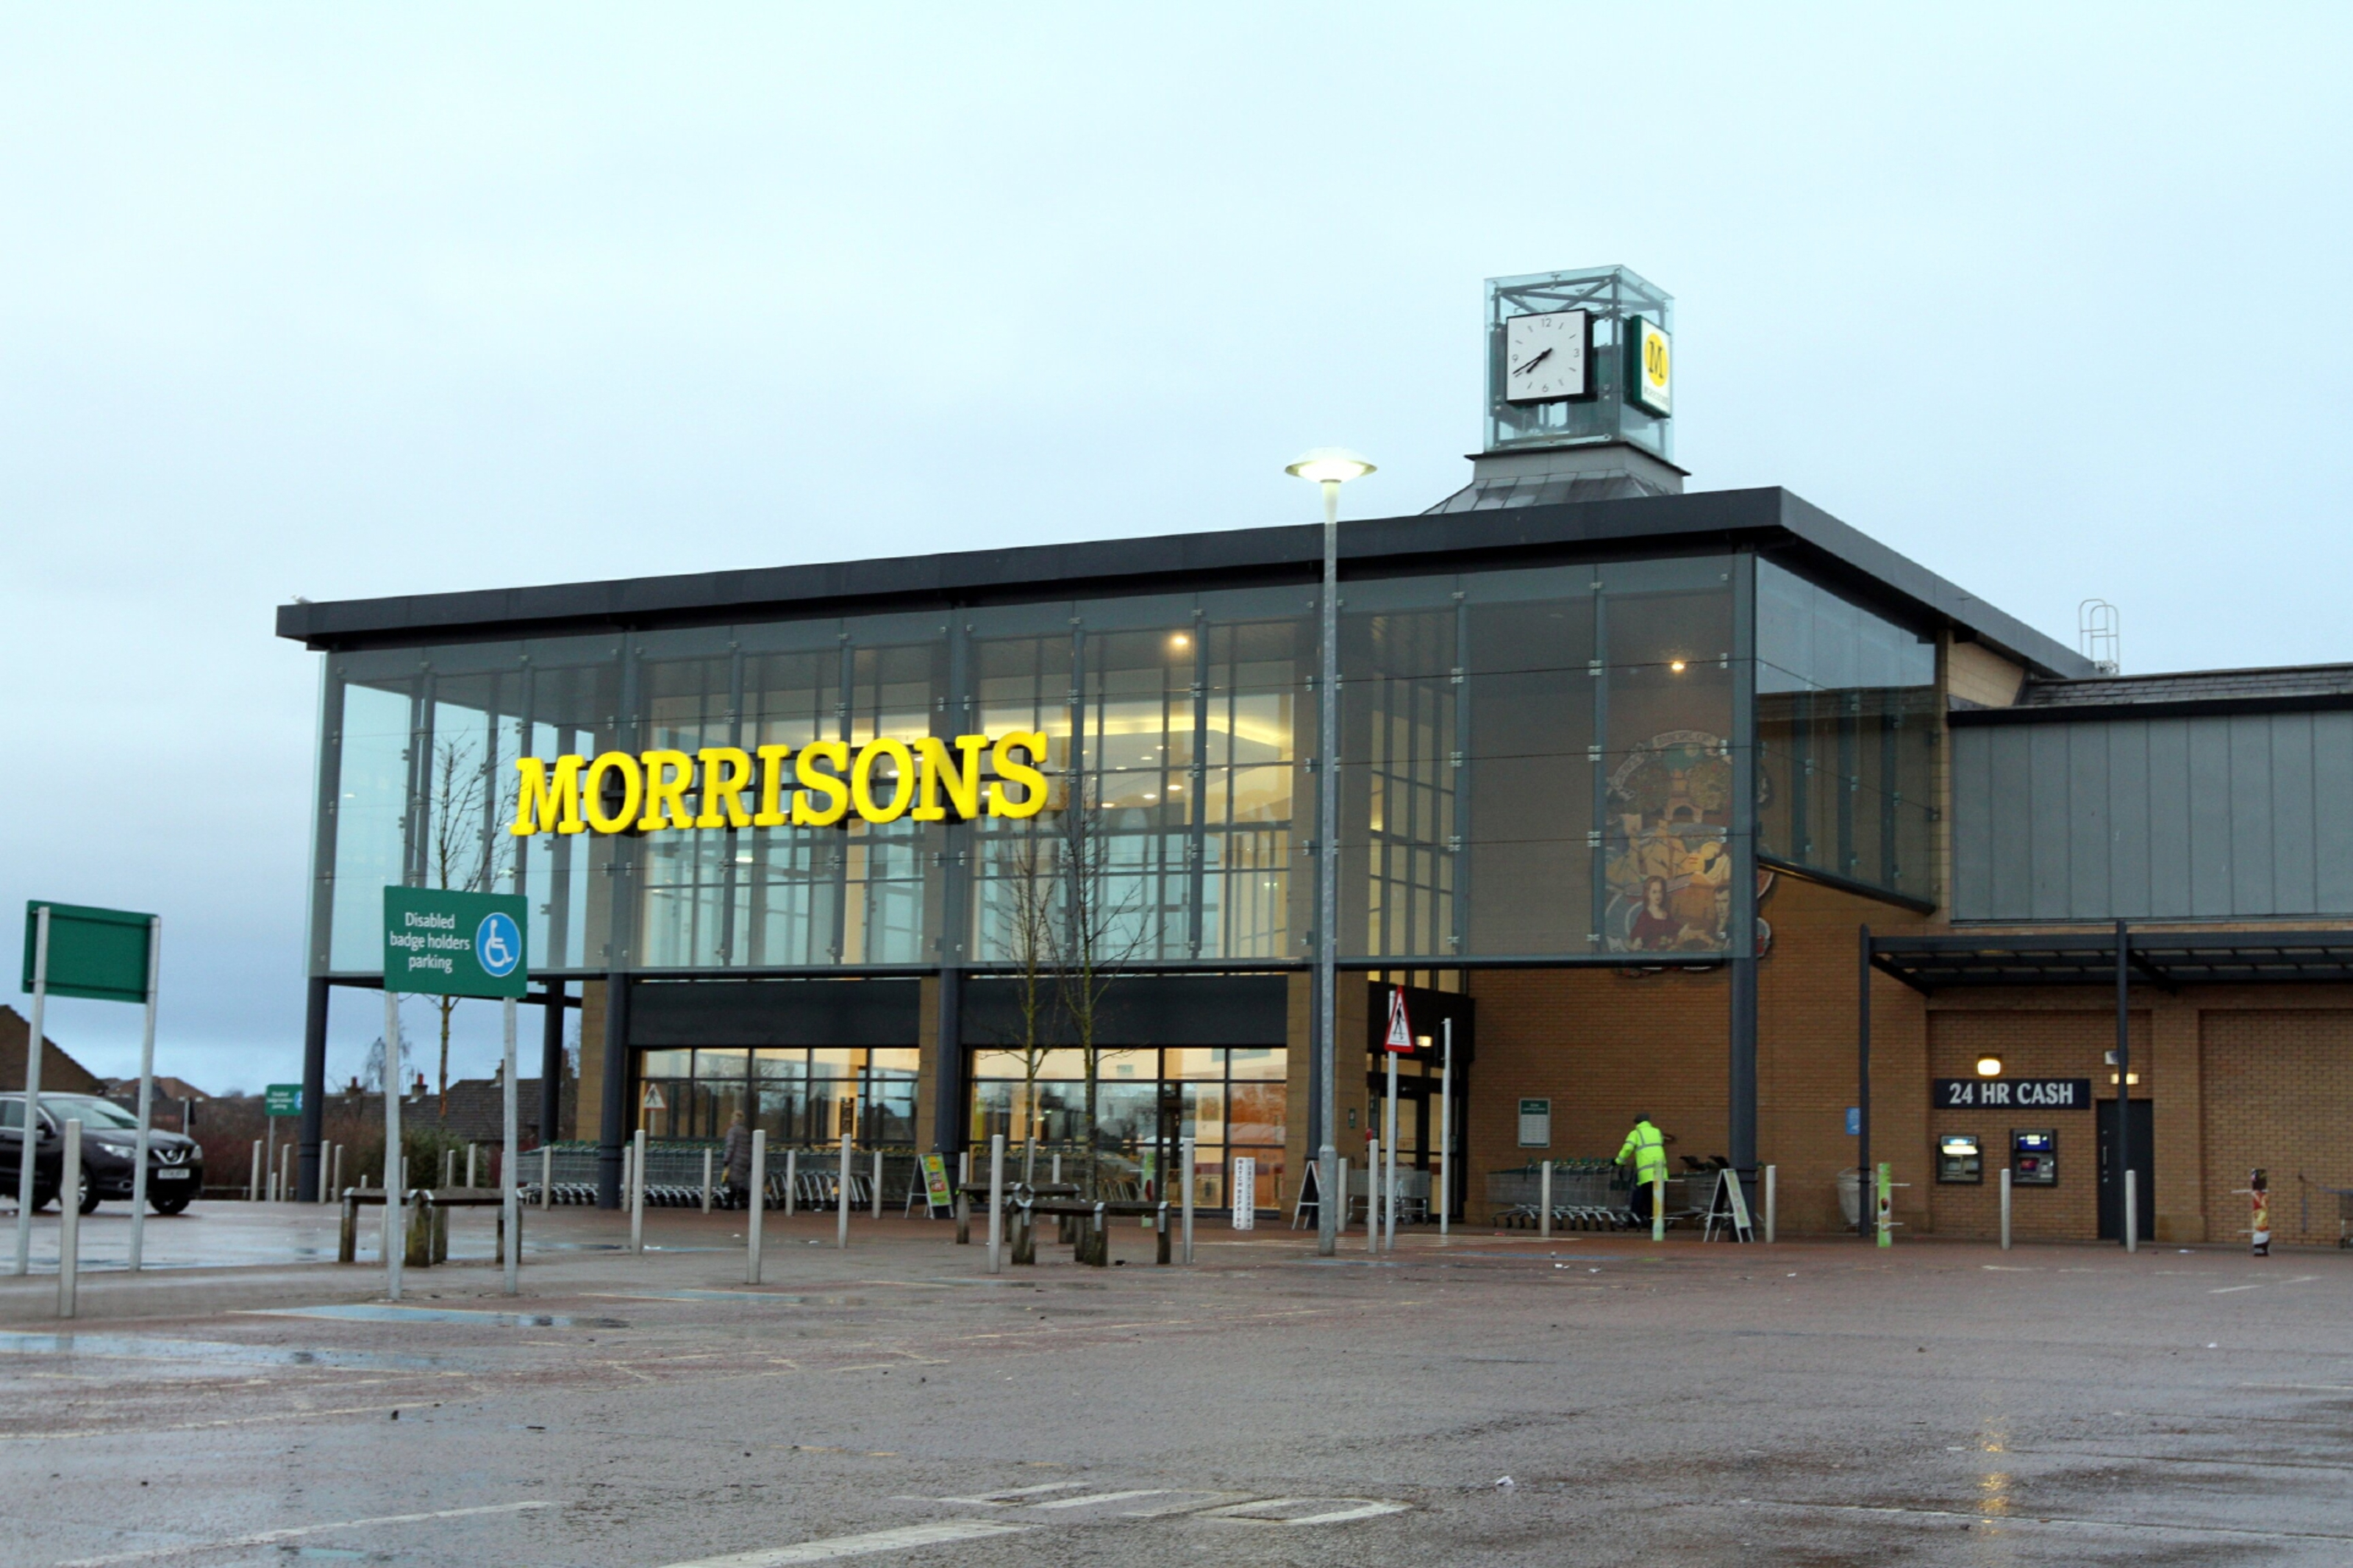 Morrisons in Dundee